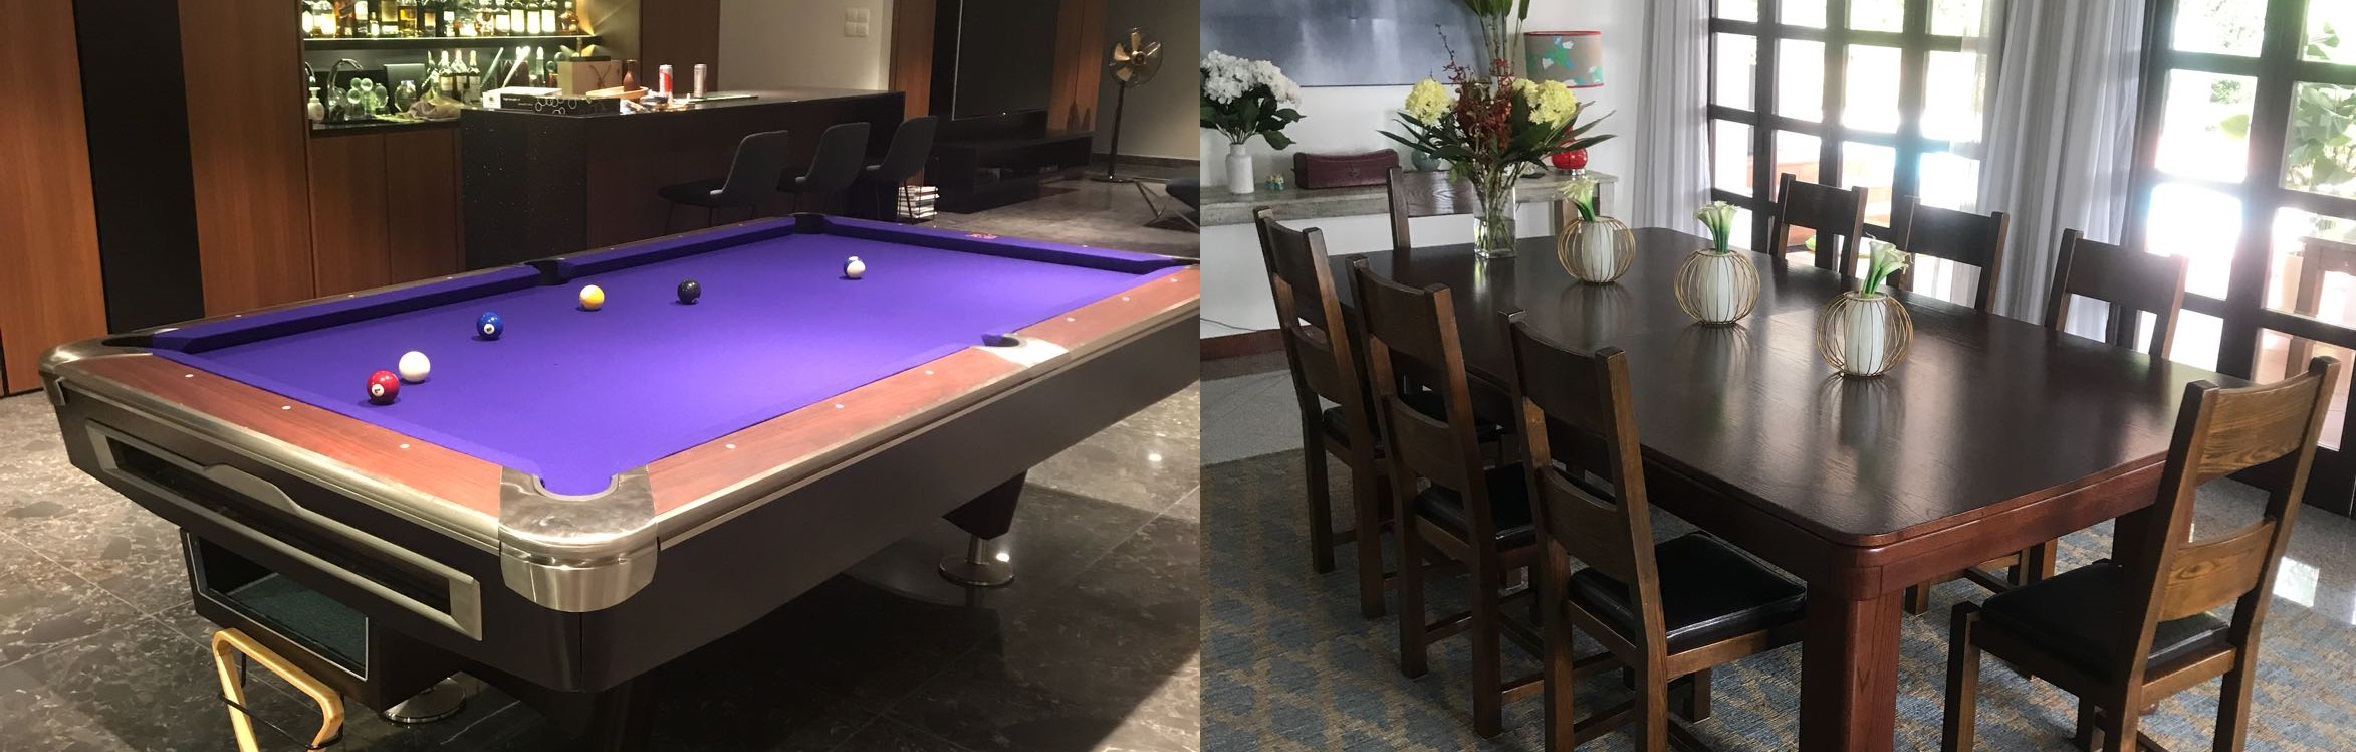 Billard Montfort Pool Table Guide Guide To Buying A Pool Table Buyer S Guide